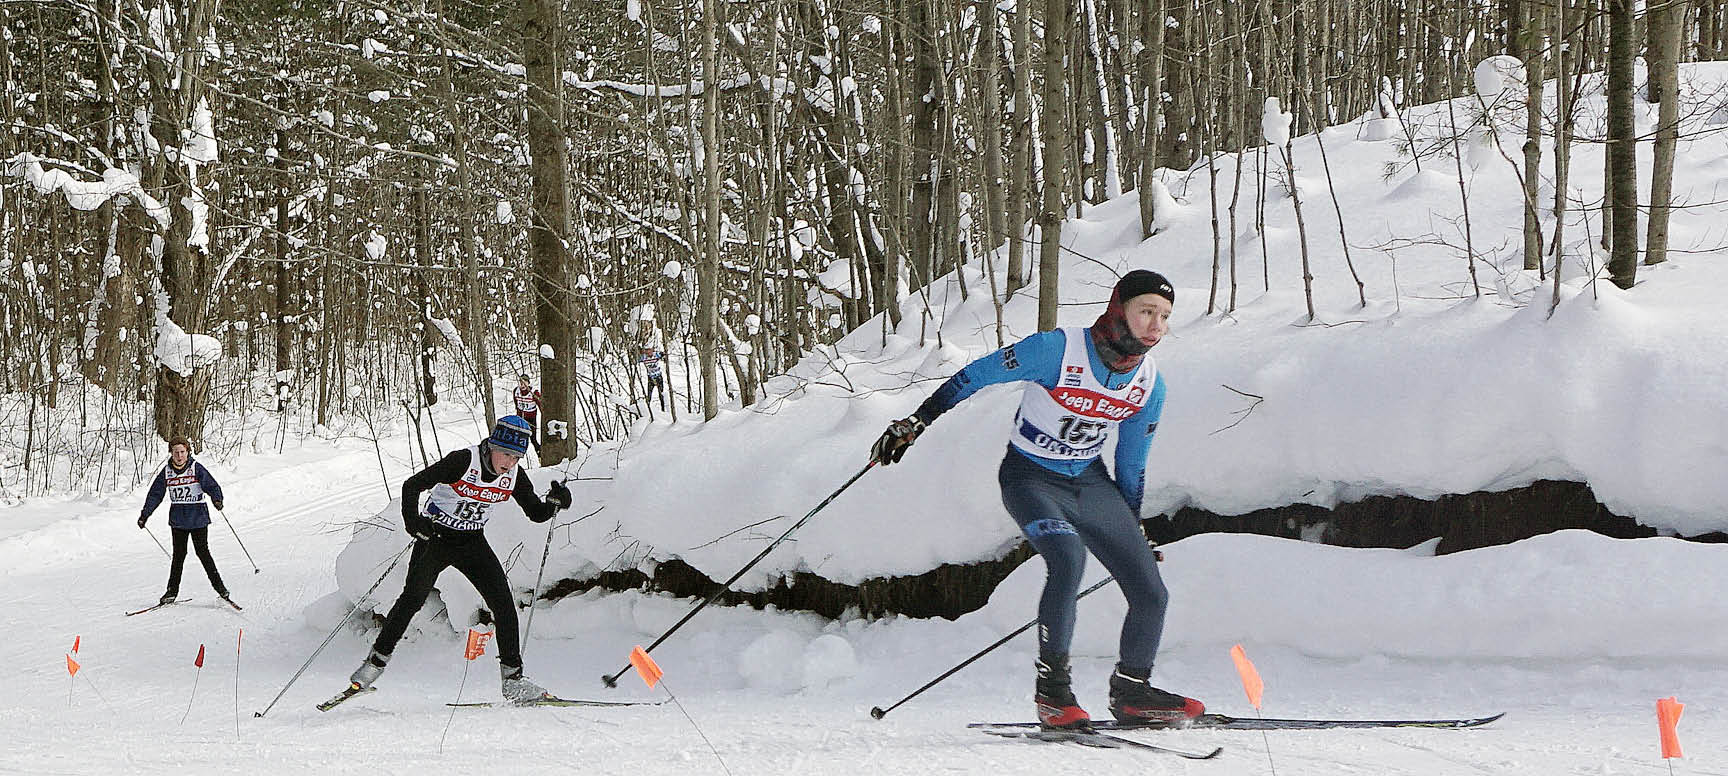 Sawmill Nordic Centre, Hepworth, Ontario - cross-country ski race